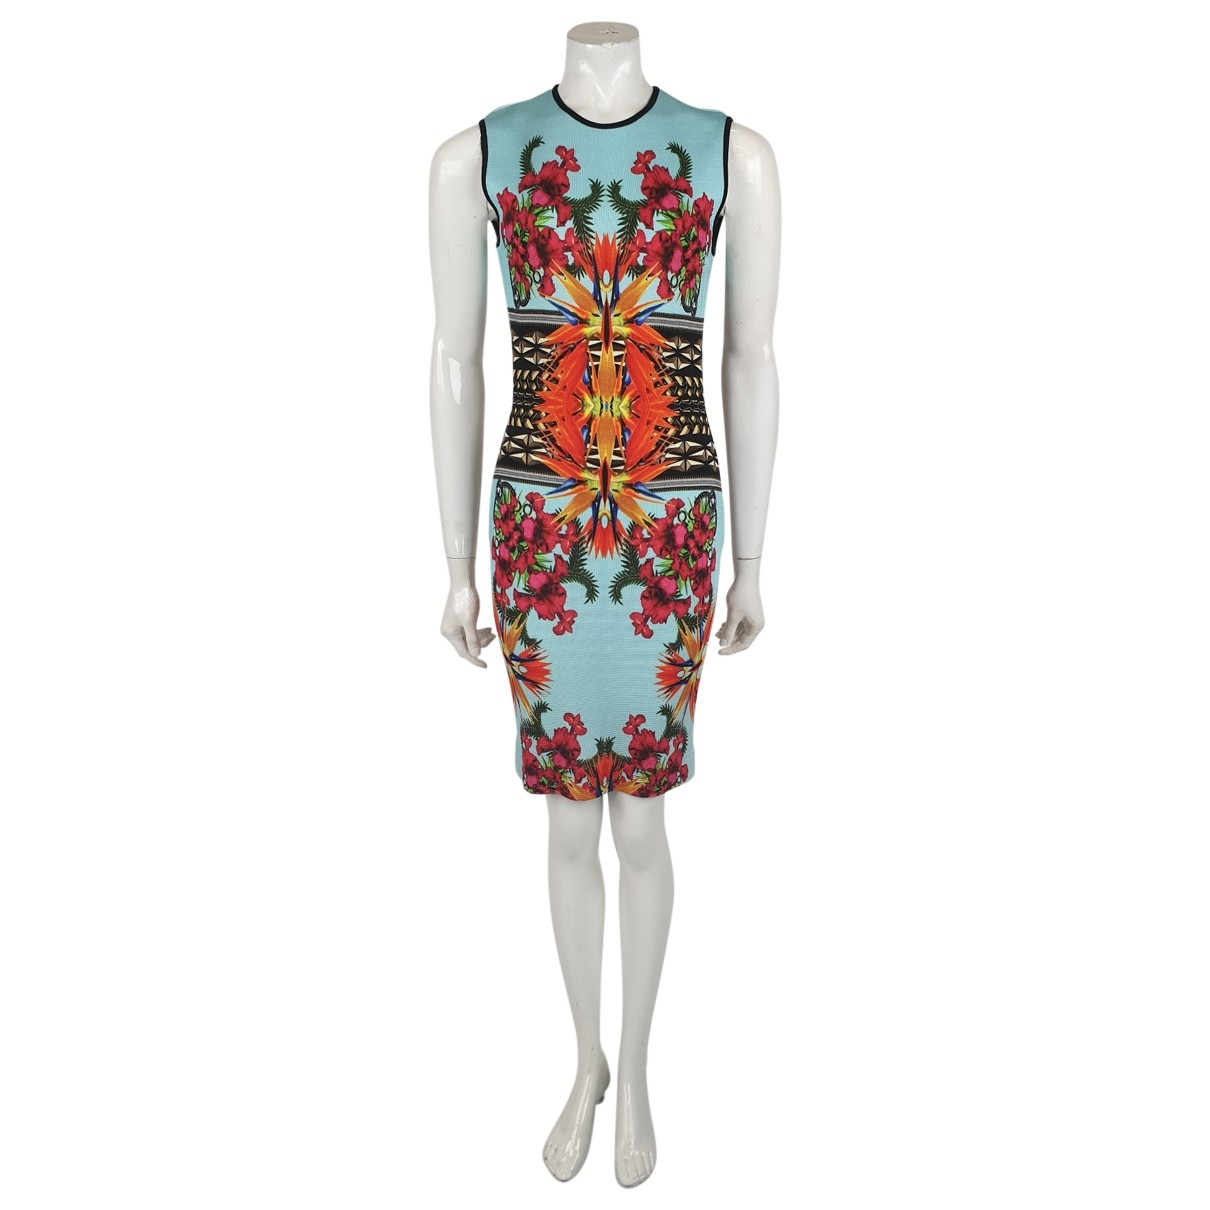 Givenchy \N Multicolour dress for Women S International